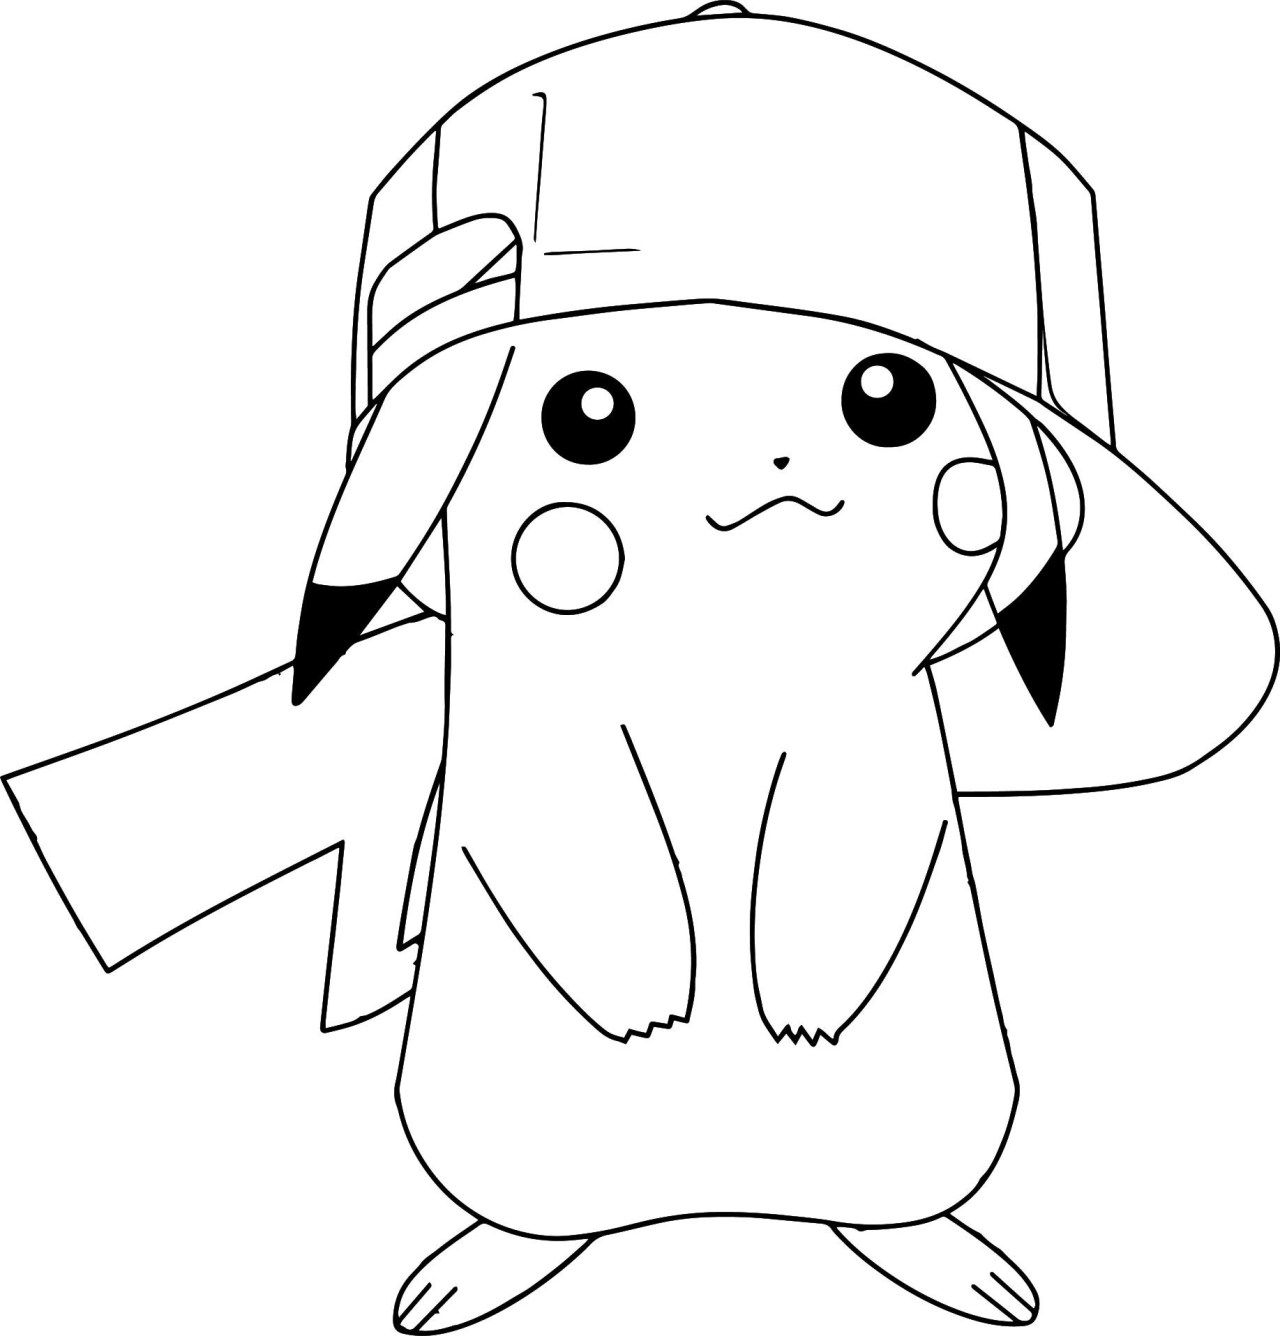 Coloring Pages For Printing Pokemon